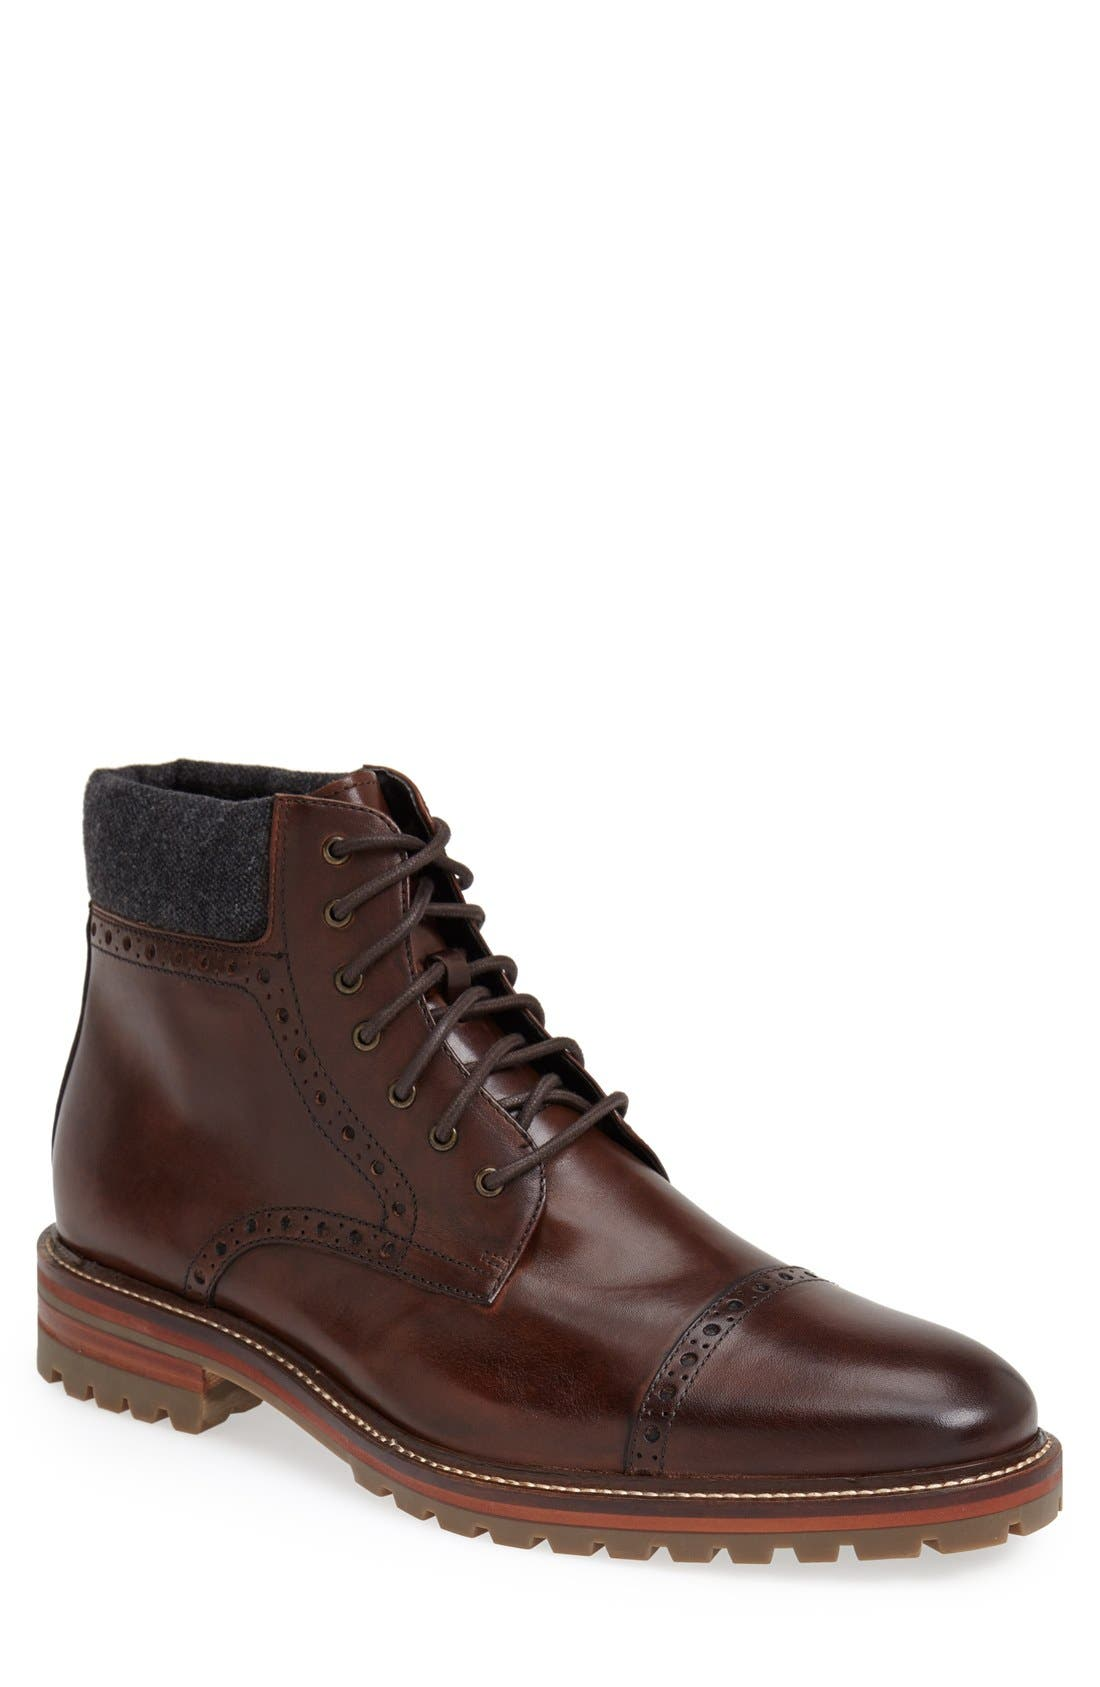 J&M 1850 'Karnes' Brogue Cap Toe Boot, Main, color, DARK BROWN LEATHER